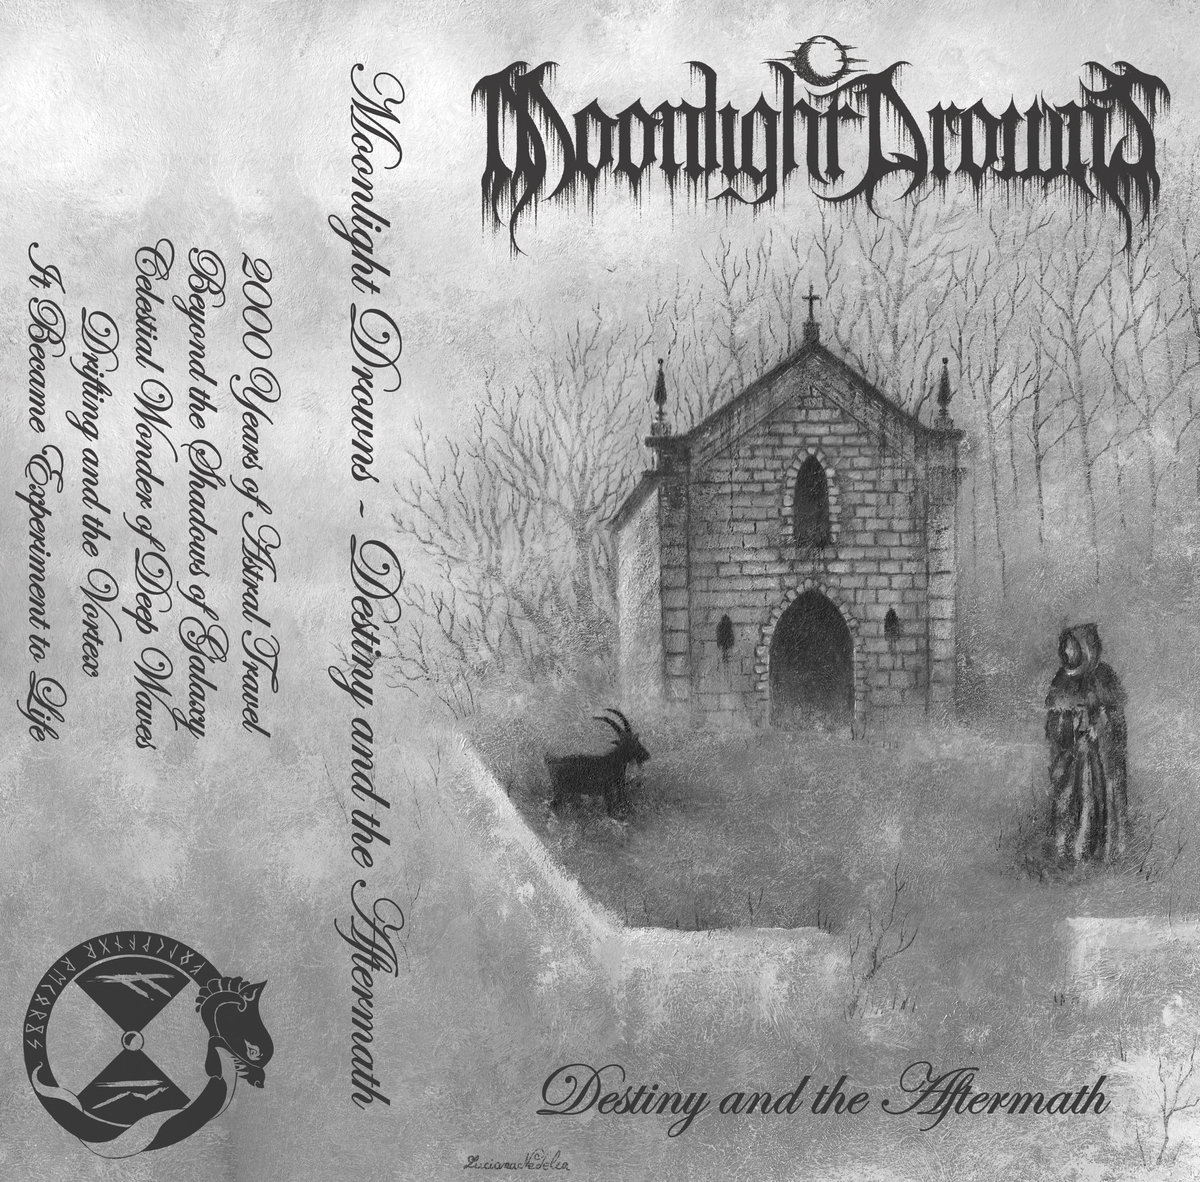 Destiny and the Aftermath | Fólkvangr Records